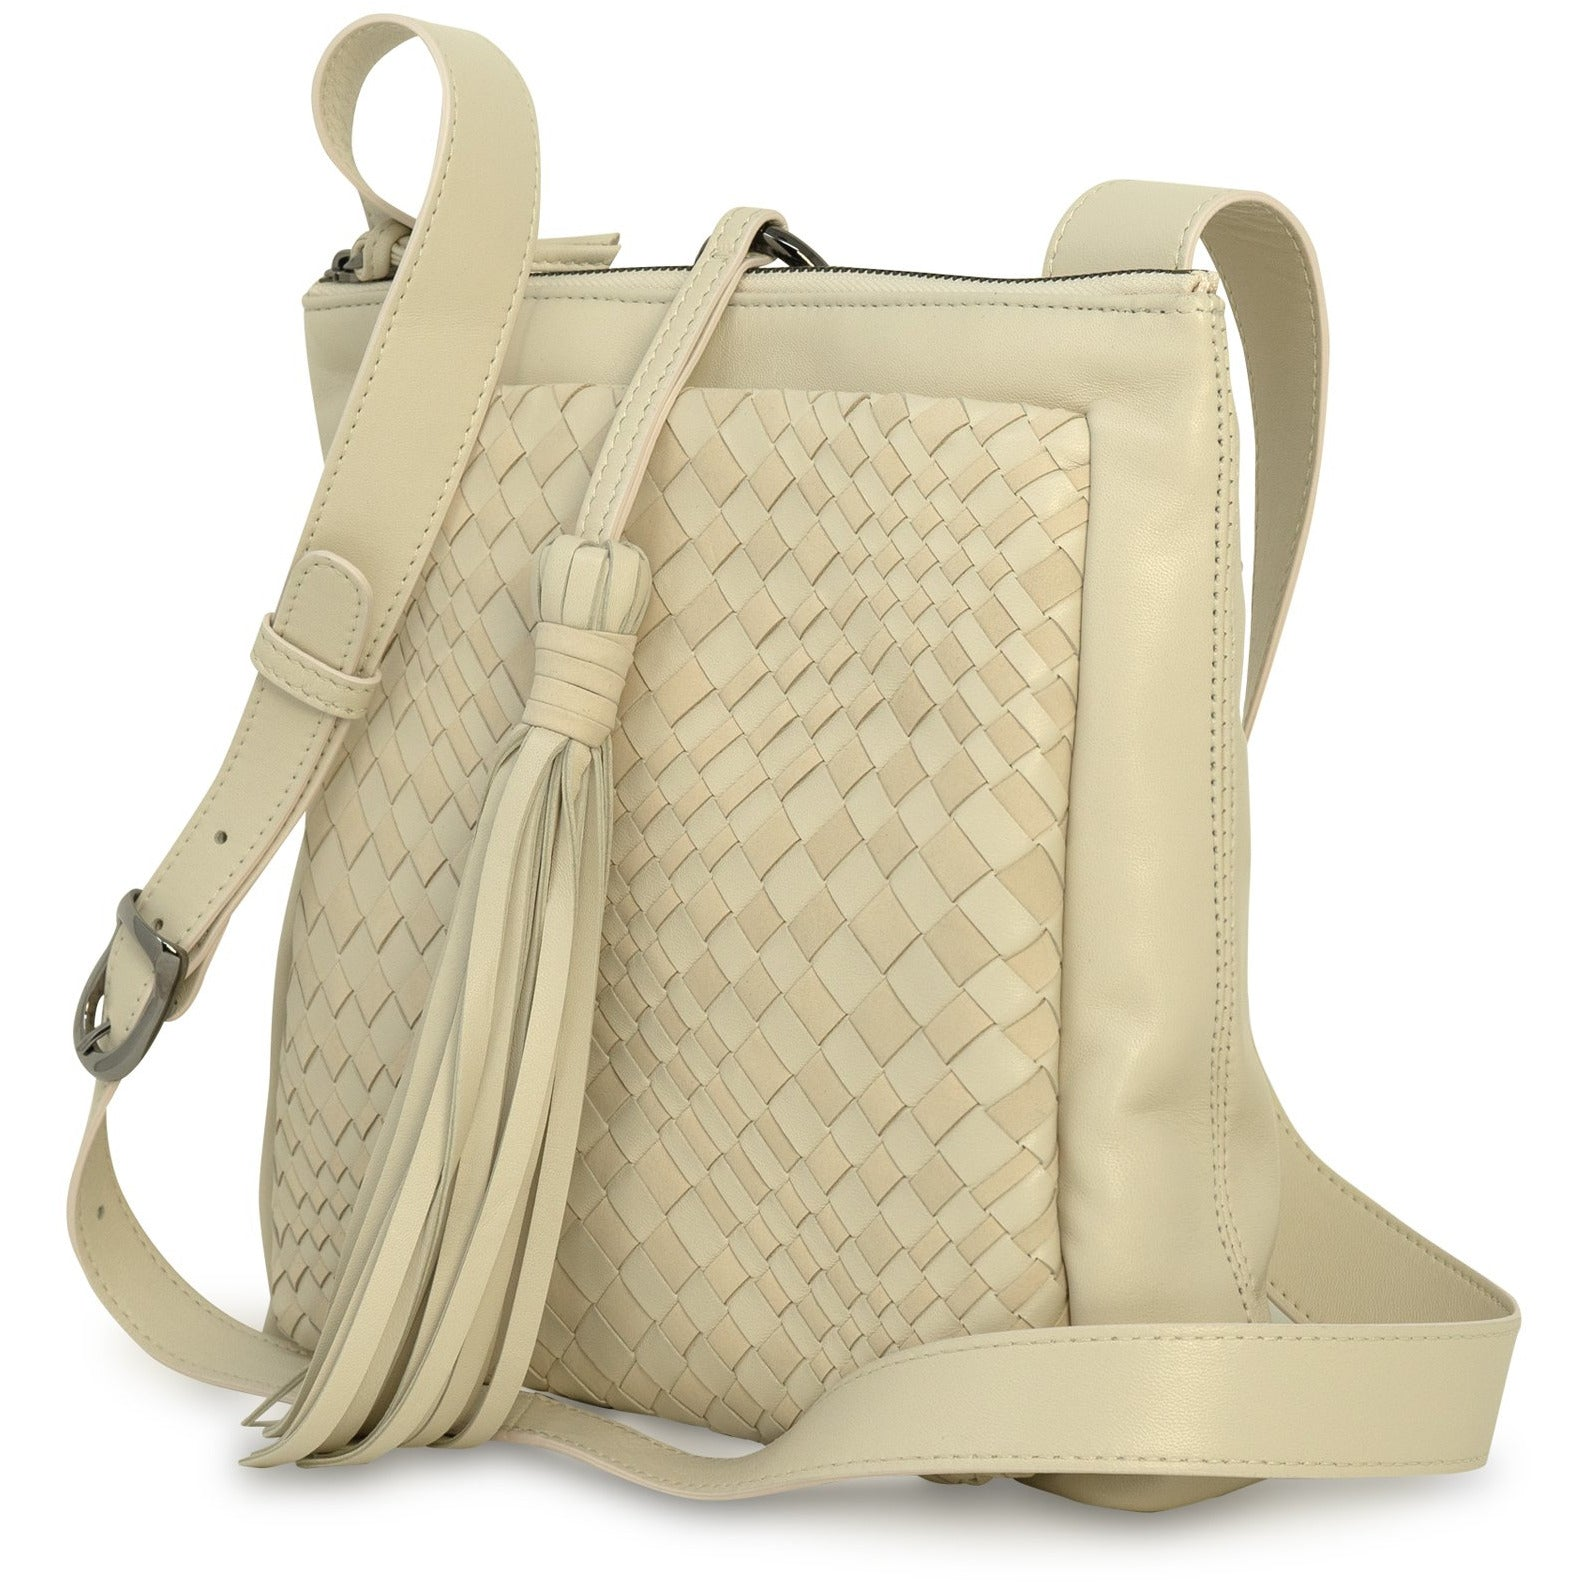 GINGER IS Crossbody Bag Intrecciato Optical Leather Nappa Beige - Jennifer Tattanelli